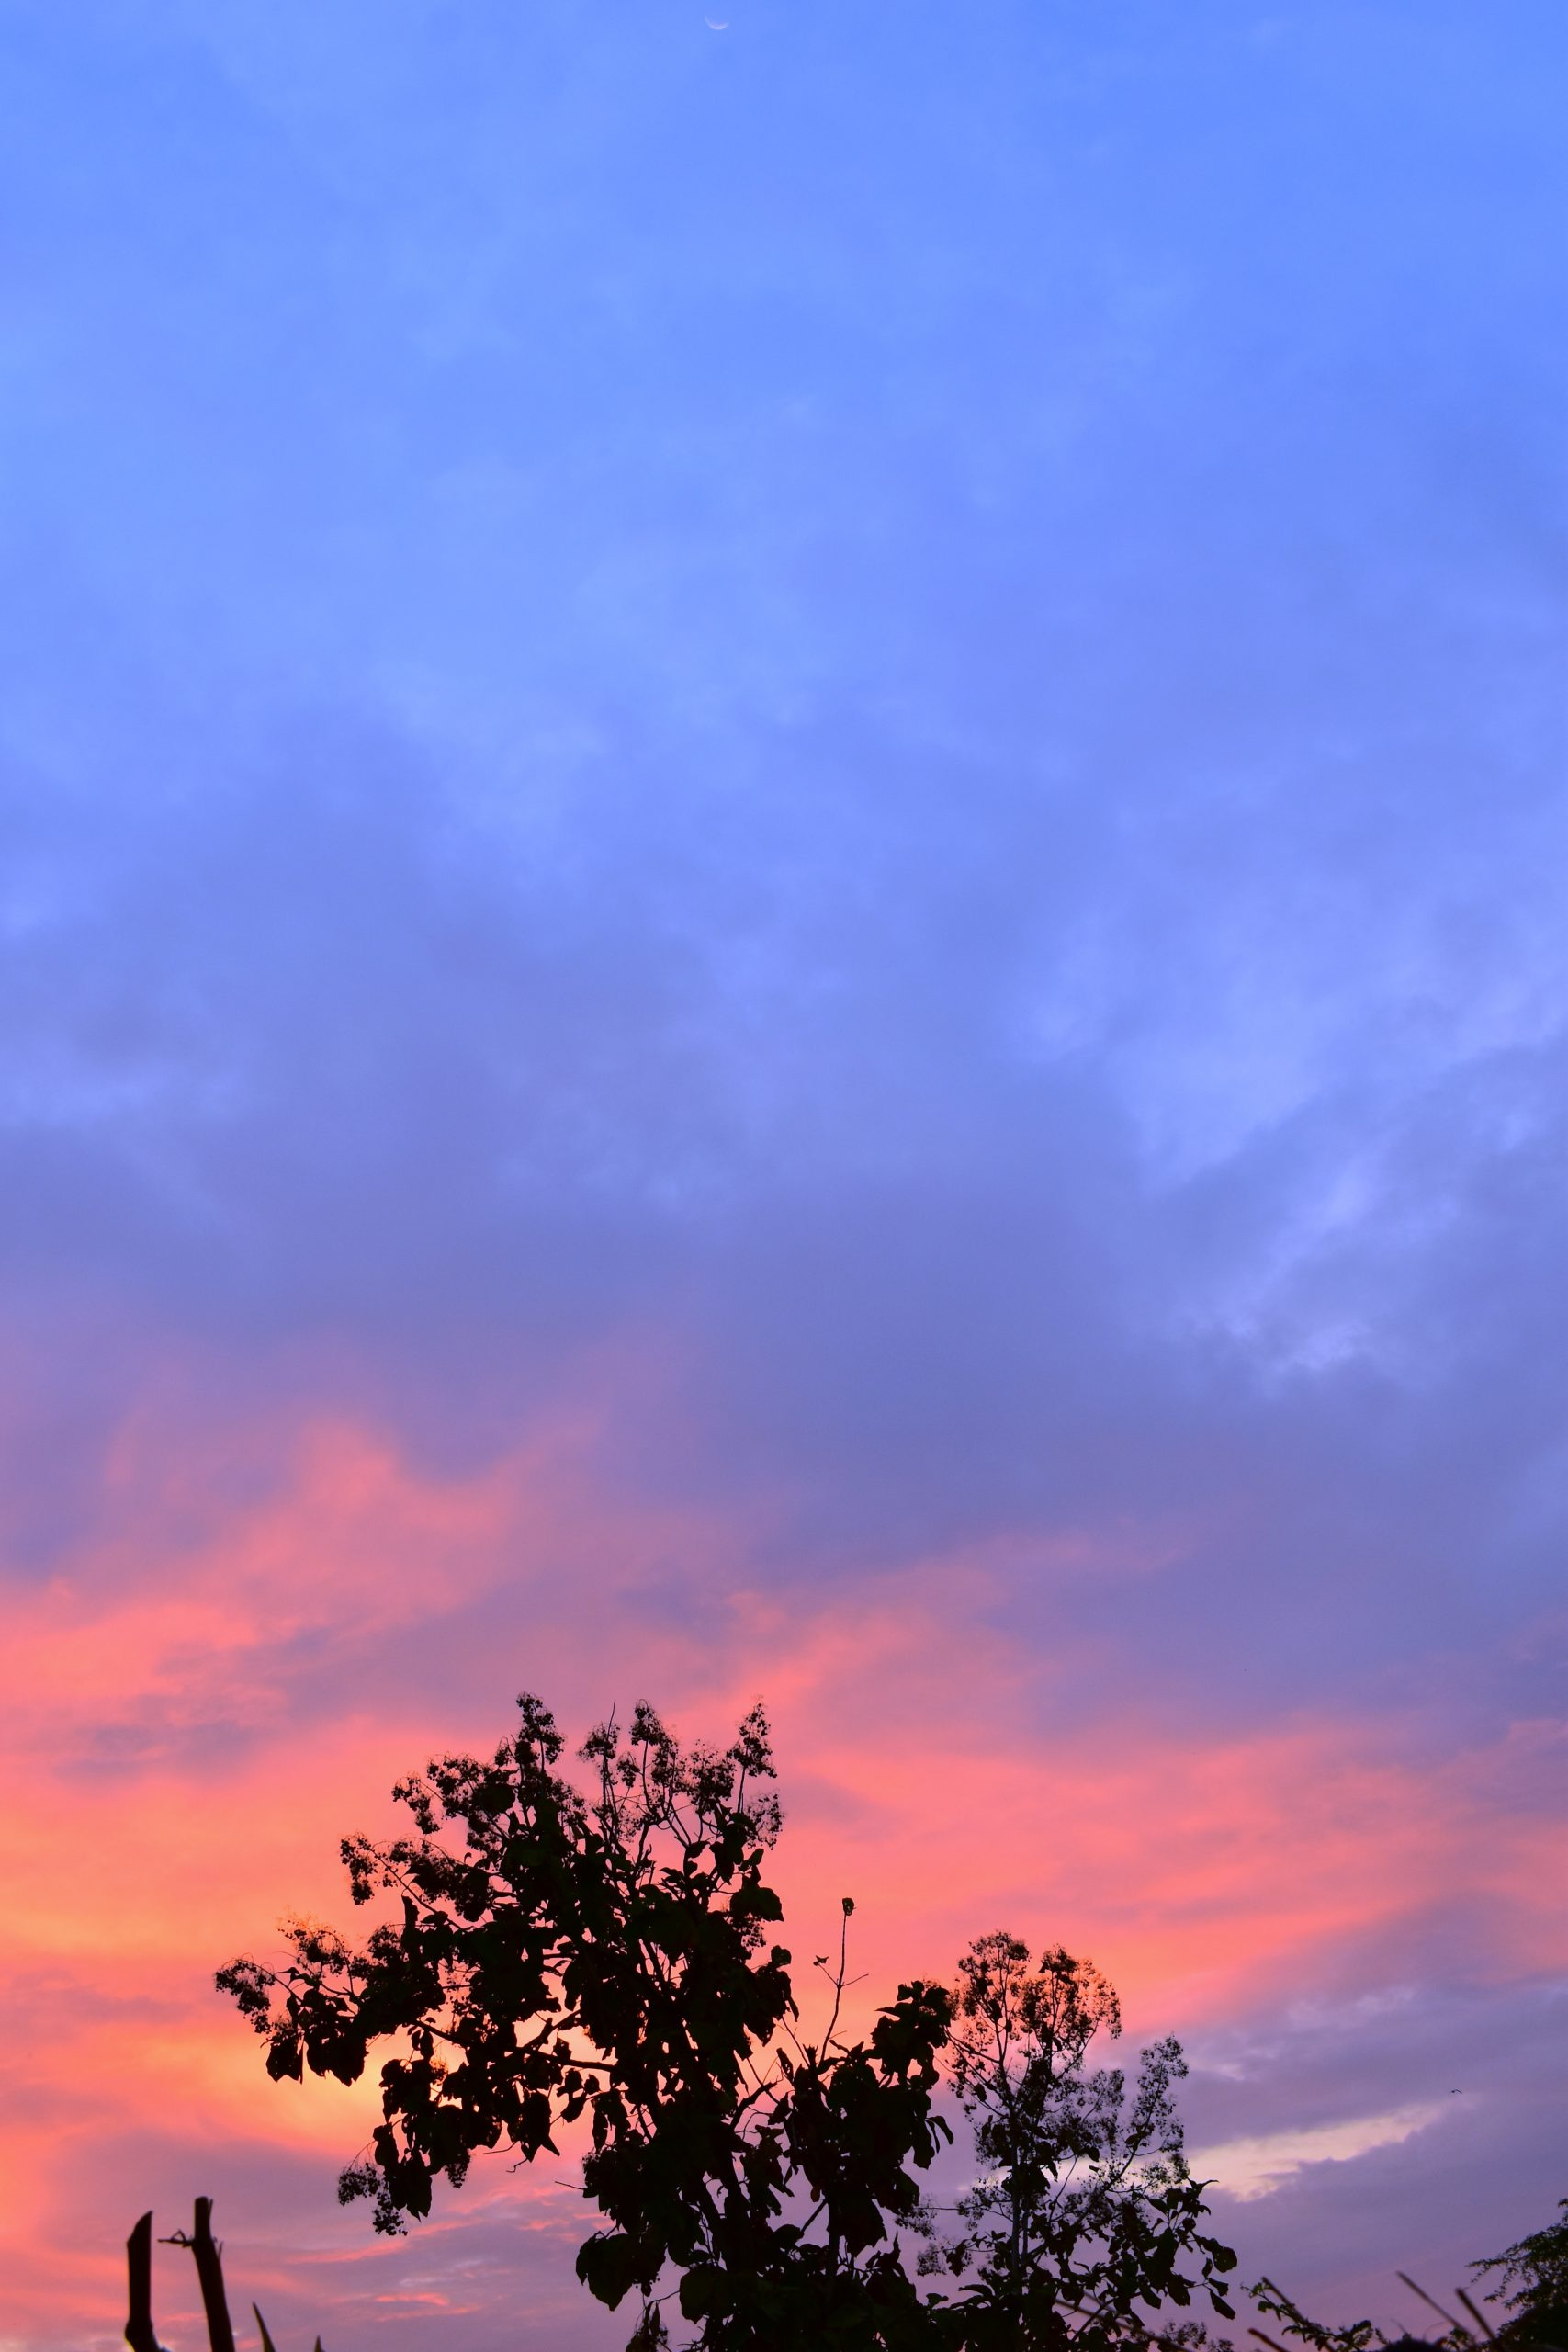 Sky during morning